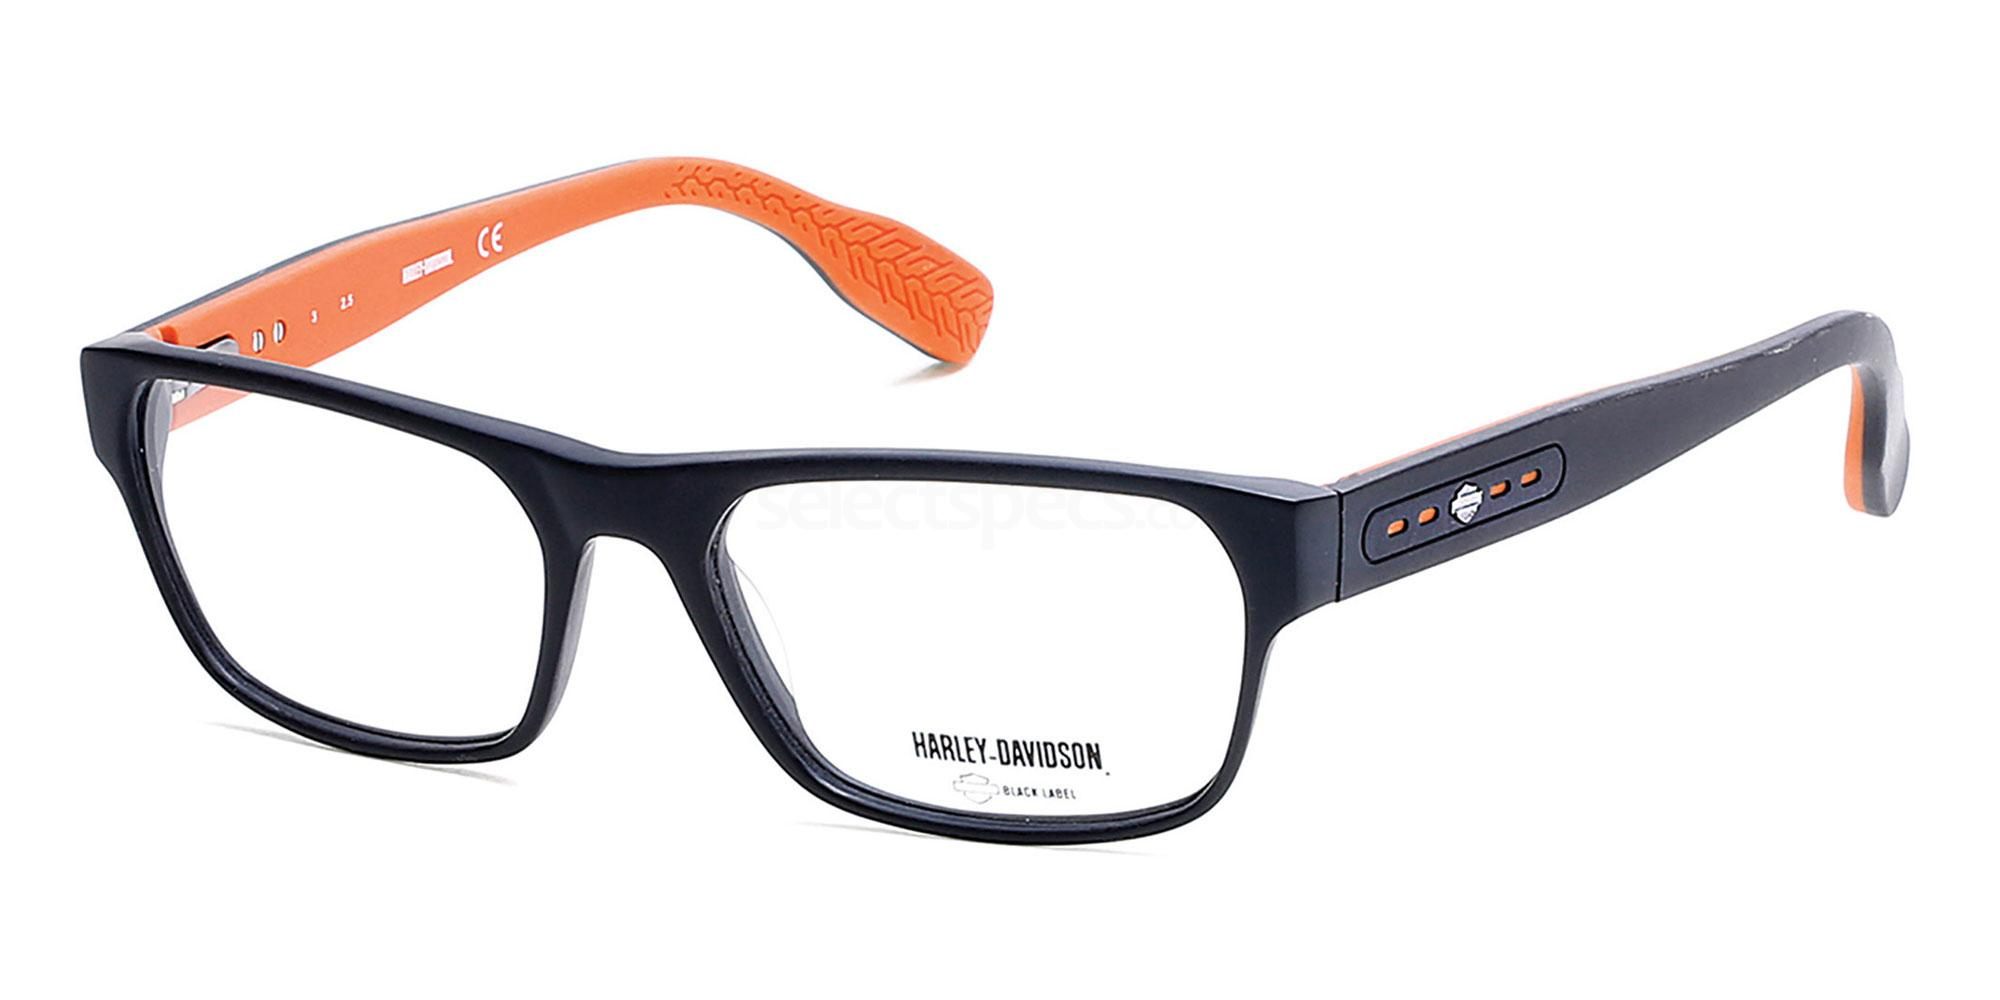 002 HD 1037 Glasses, Harley Davidson